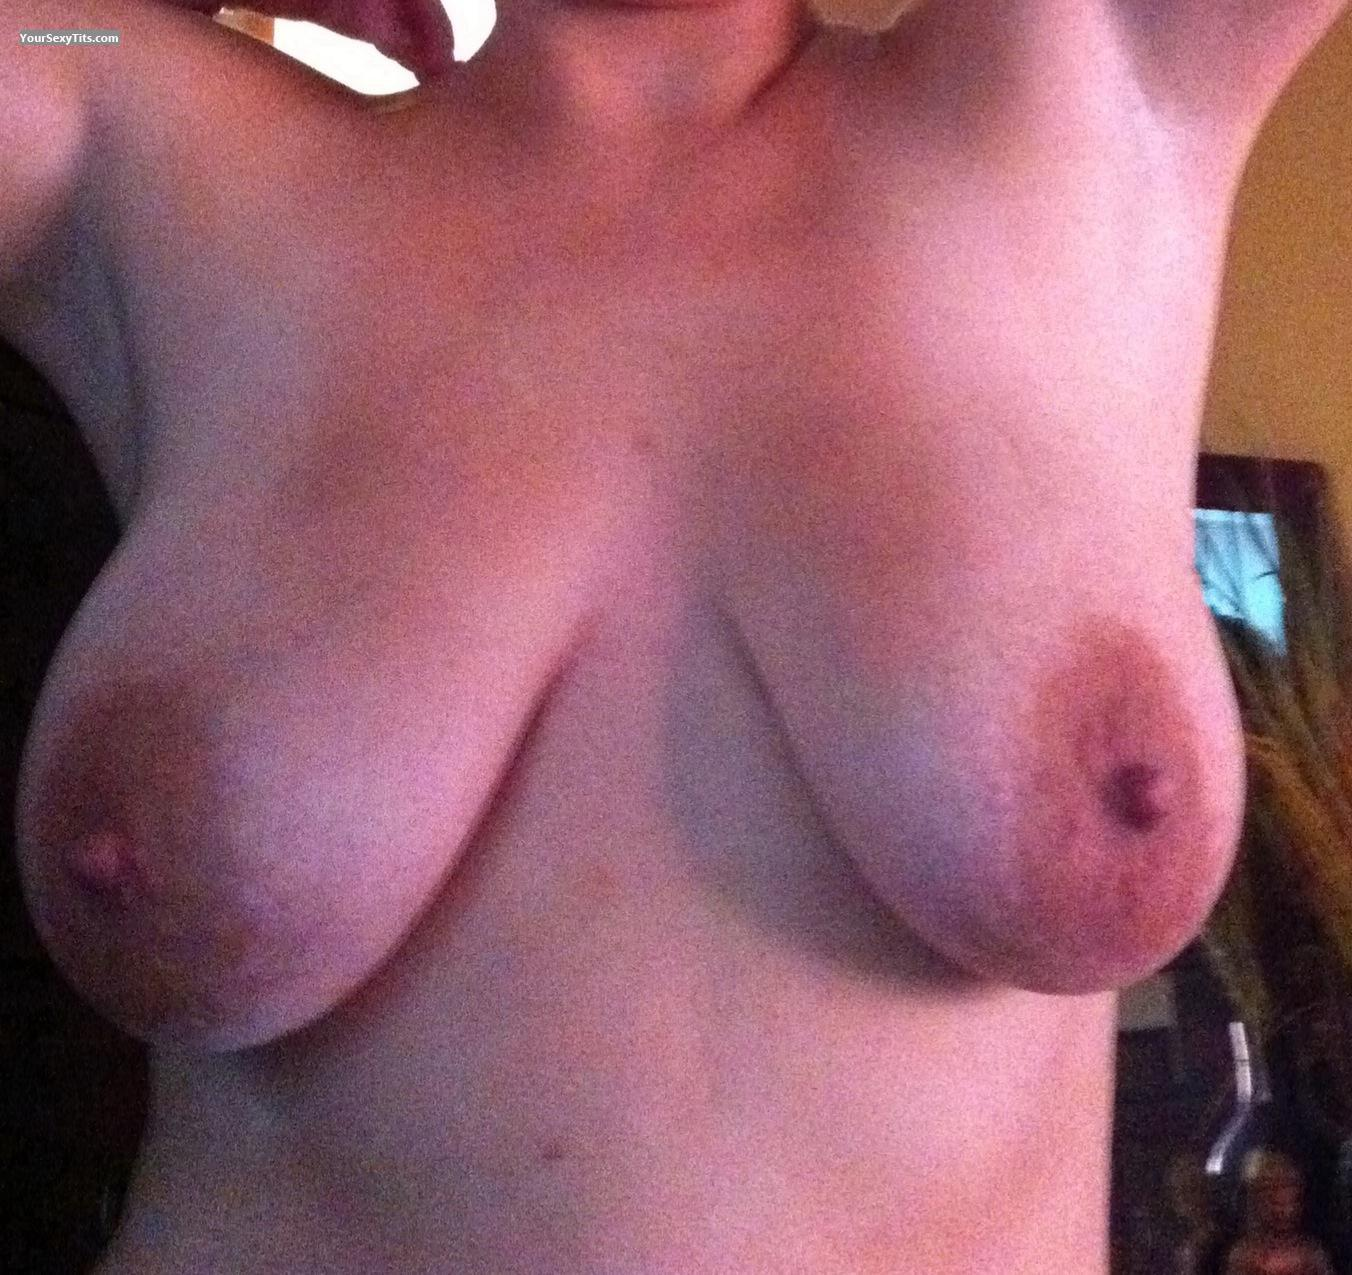 Tit Flash: Big Tits By IPhone - Dls from United States